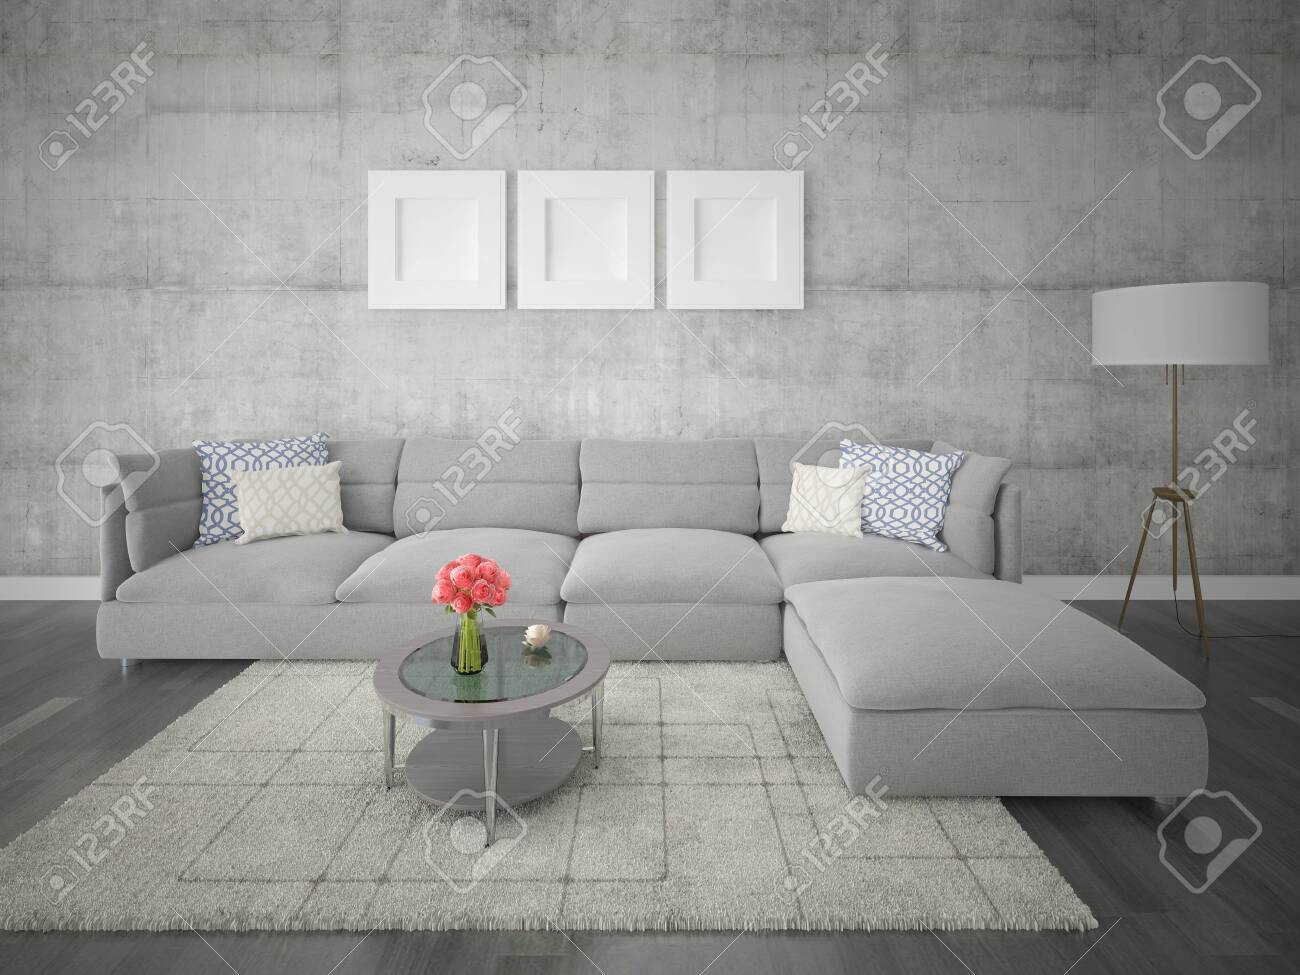 Moody Upholstered Corner Sofa With An Original Hipster Backdrop Stock Photo Picture And Royalty Free Image Image 127270302